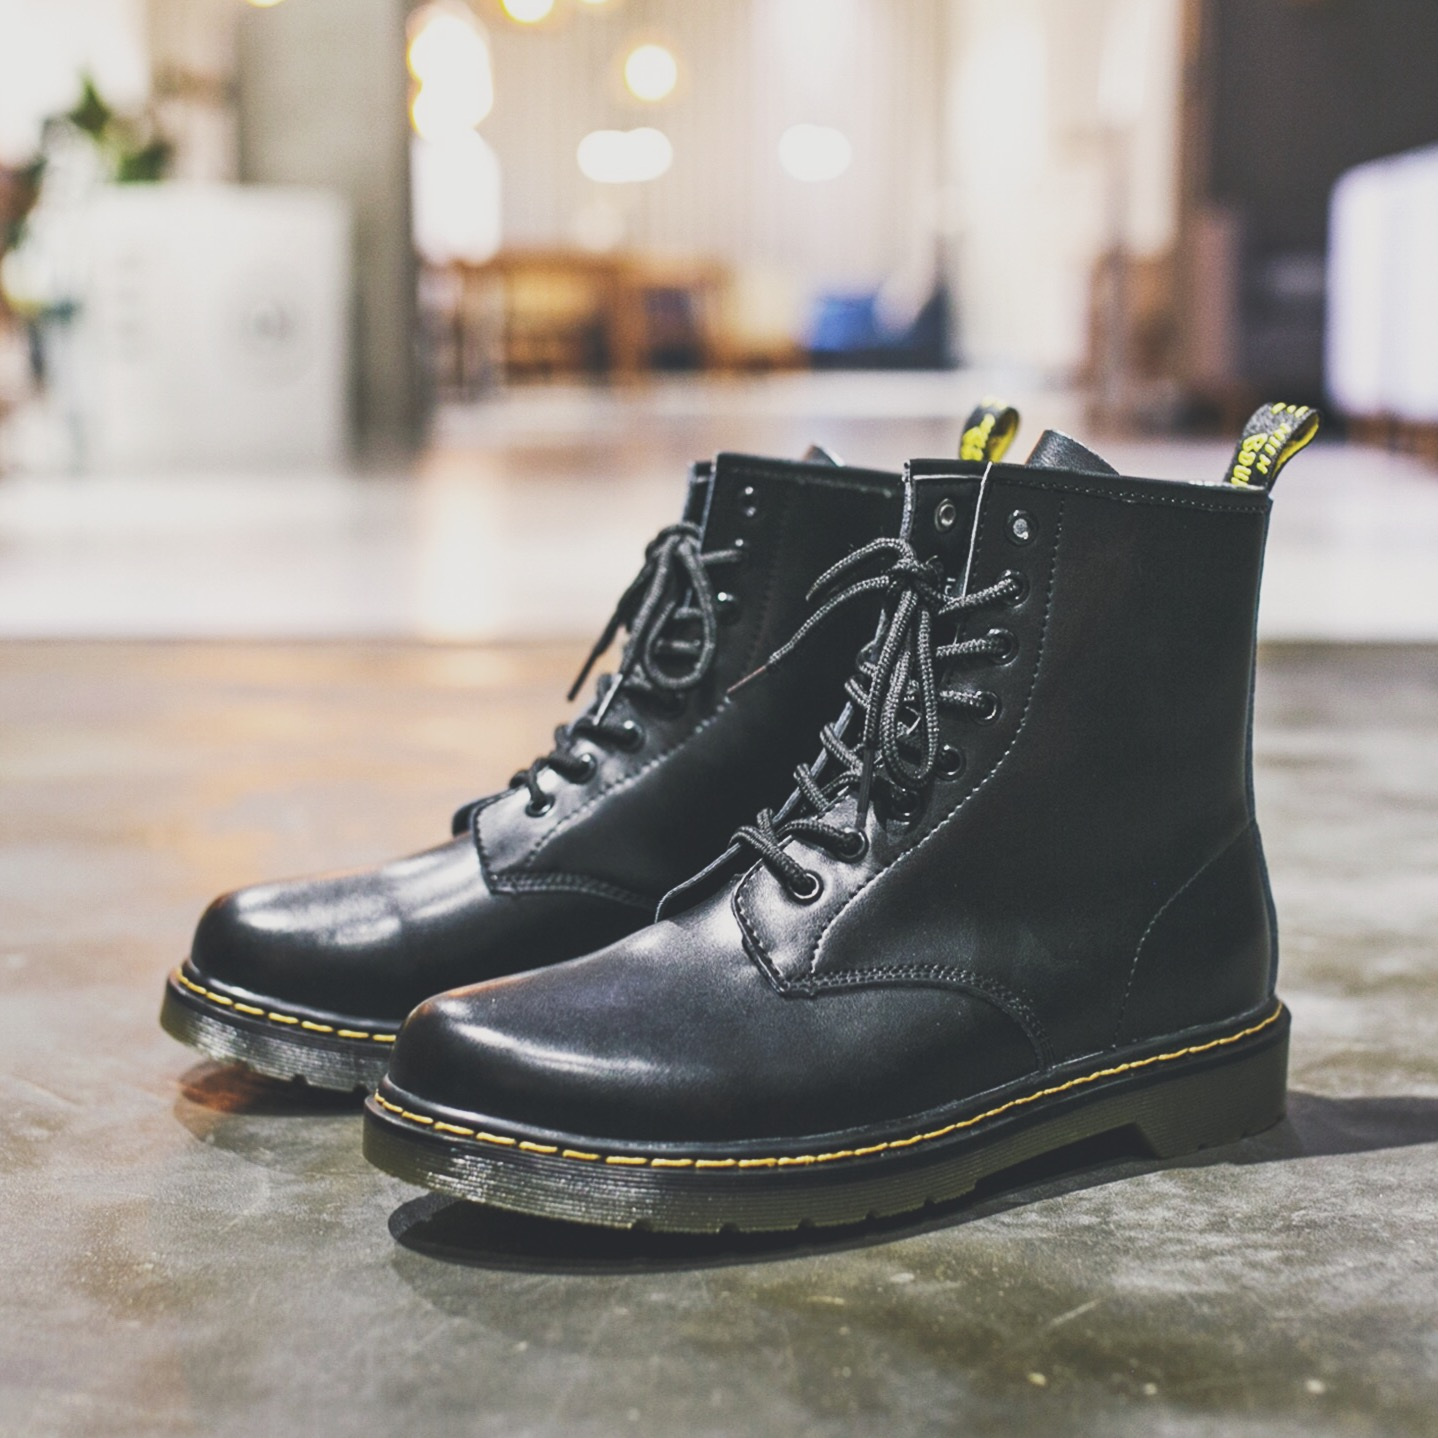 cea91792419 Winter Martin boots men's ugg boots high top short boots military boots  desert England leather black damp cotton overalls autumn